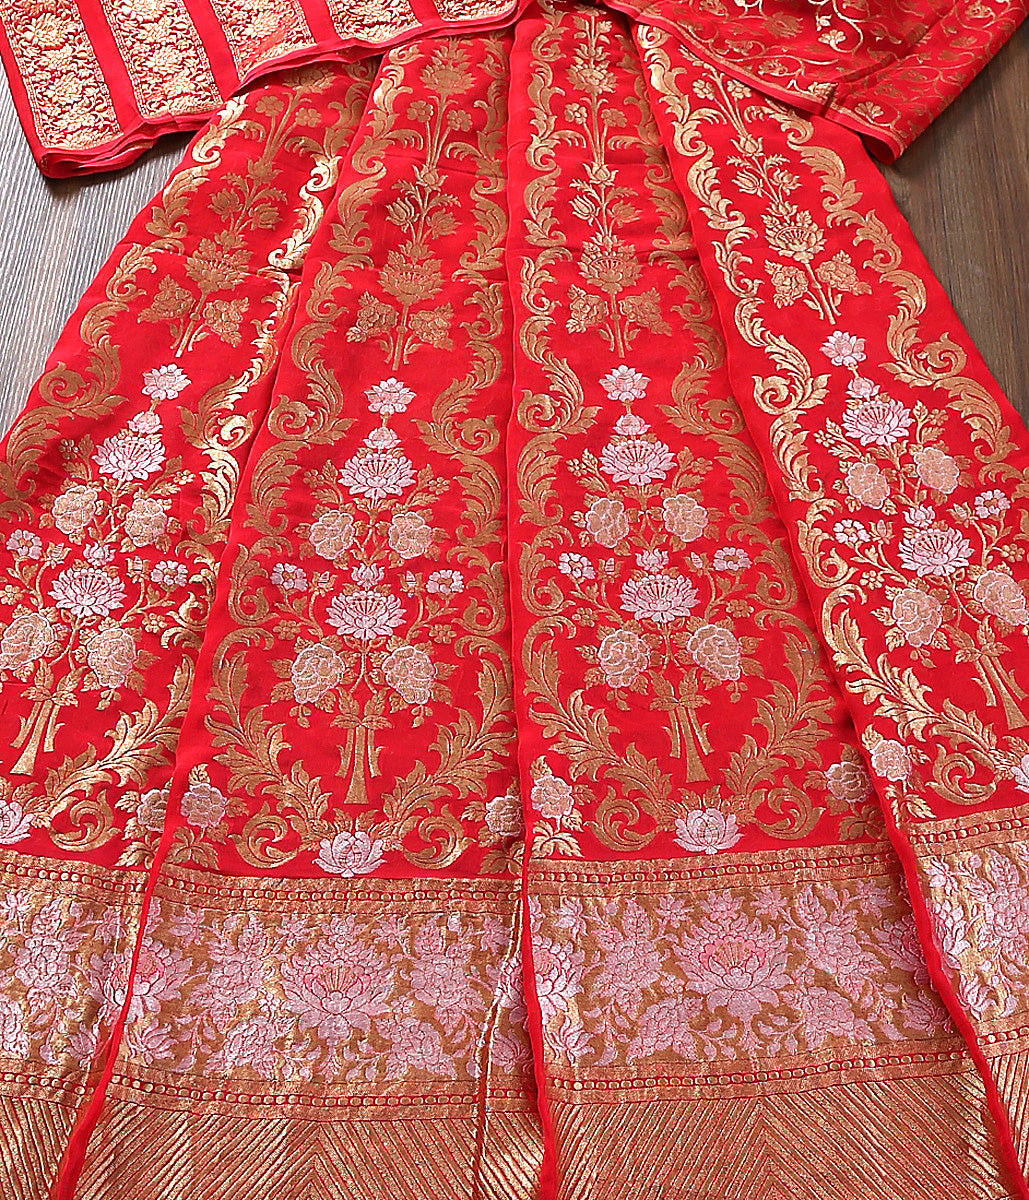 Red Banarasi Georgette Lehenga with sona rupa zari